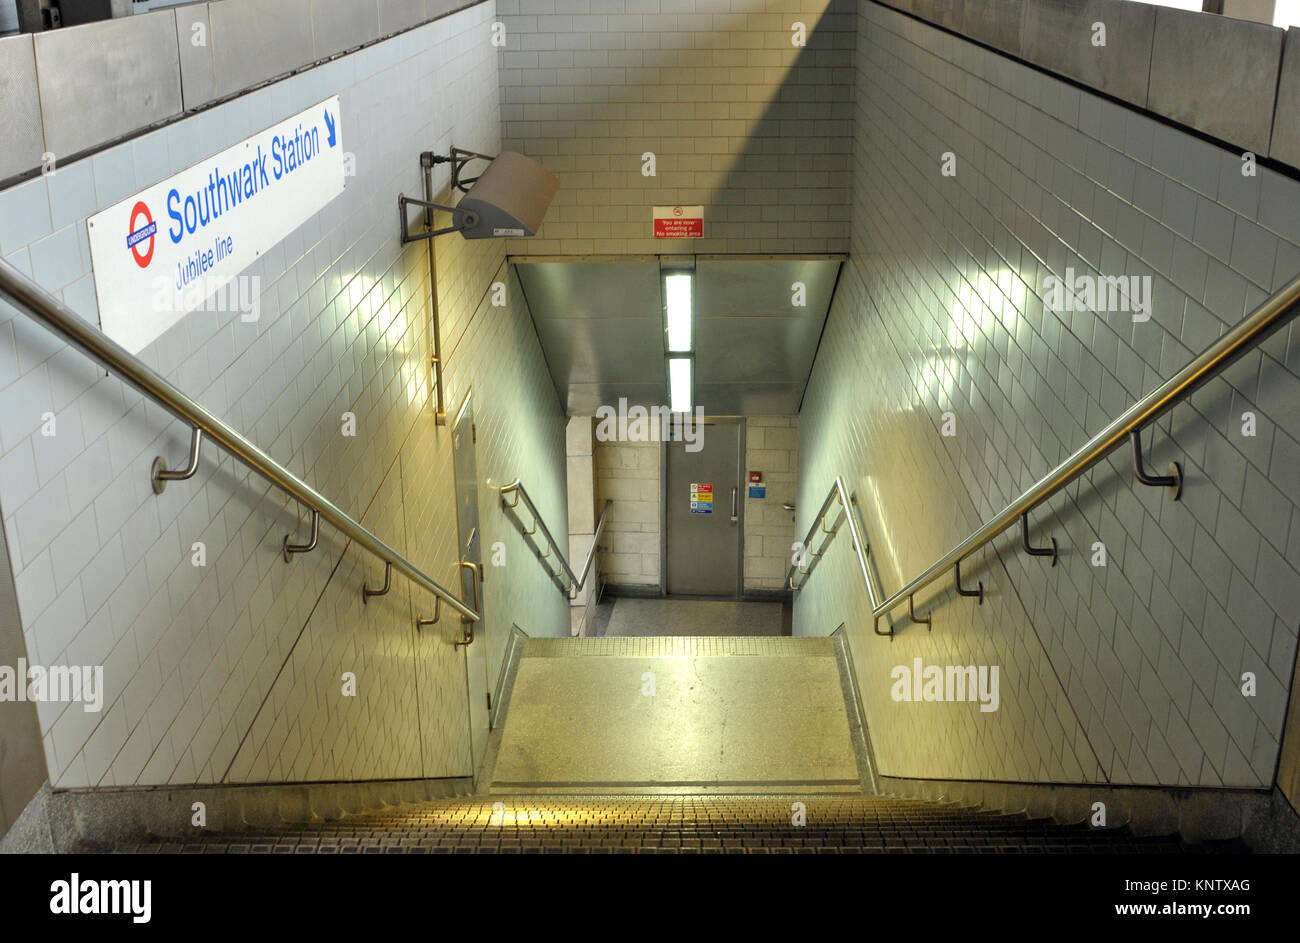 The steps or stairs down to the tube at Southwark in London from waterloo east mainline railway station. Transport - Stock Image